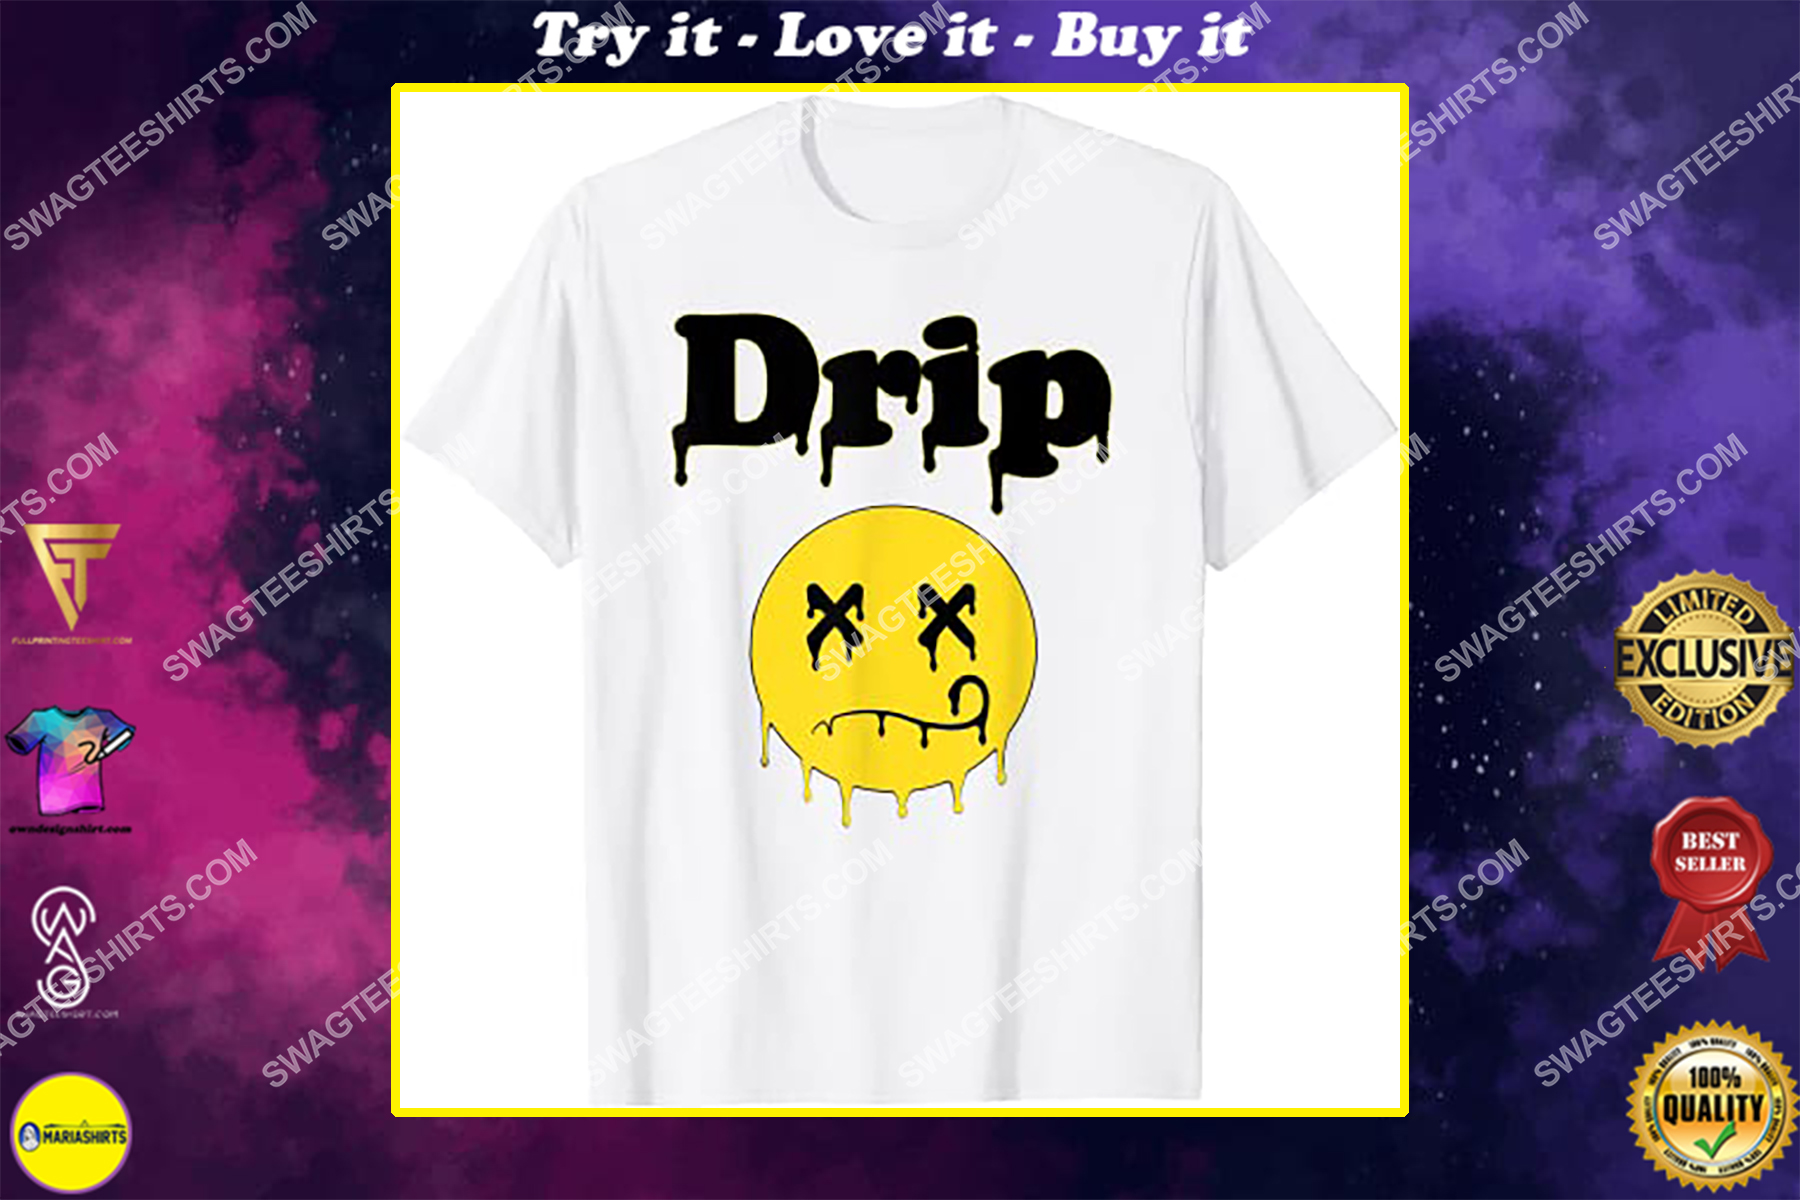 dripping smiley face melted smiley emoji shirt